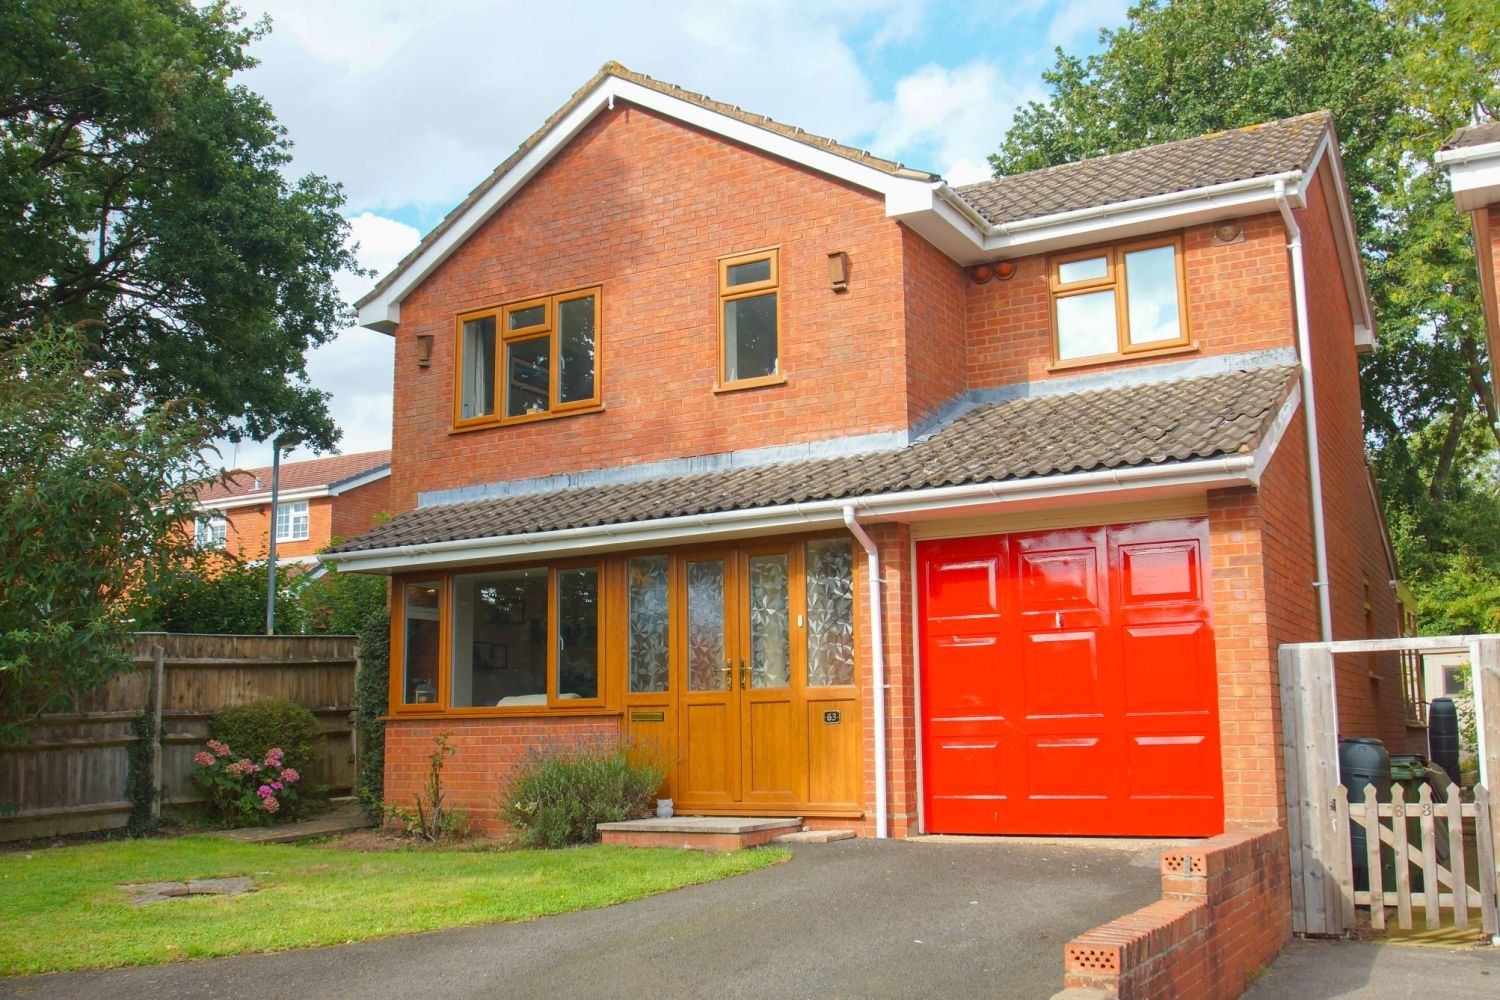 4 bed detached for sale in Packwood Close, Webheath - Property Image 1